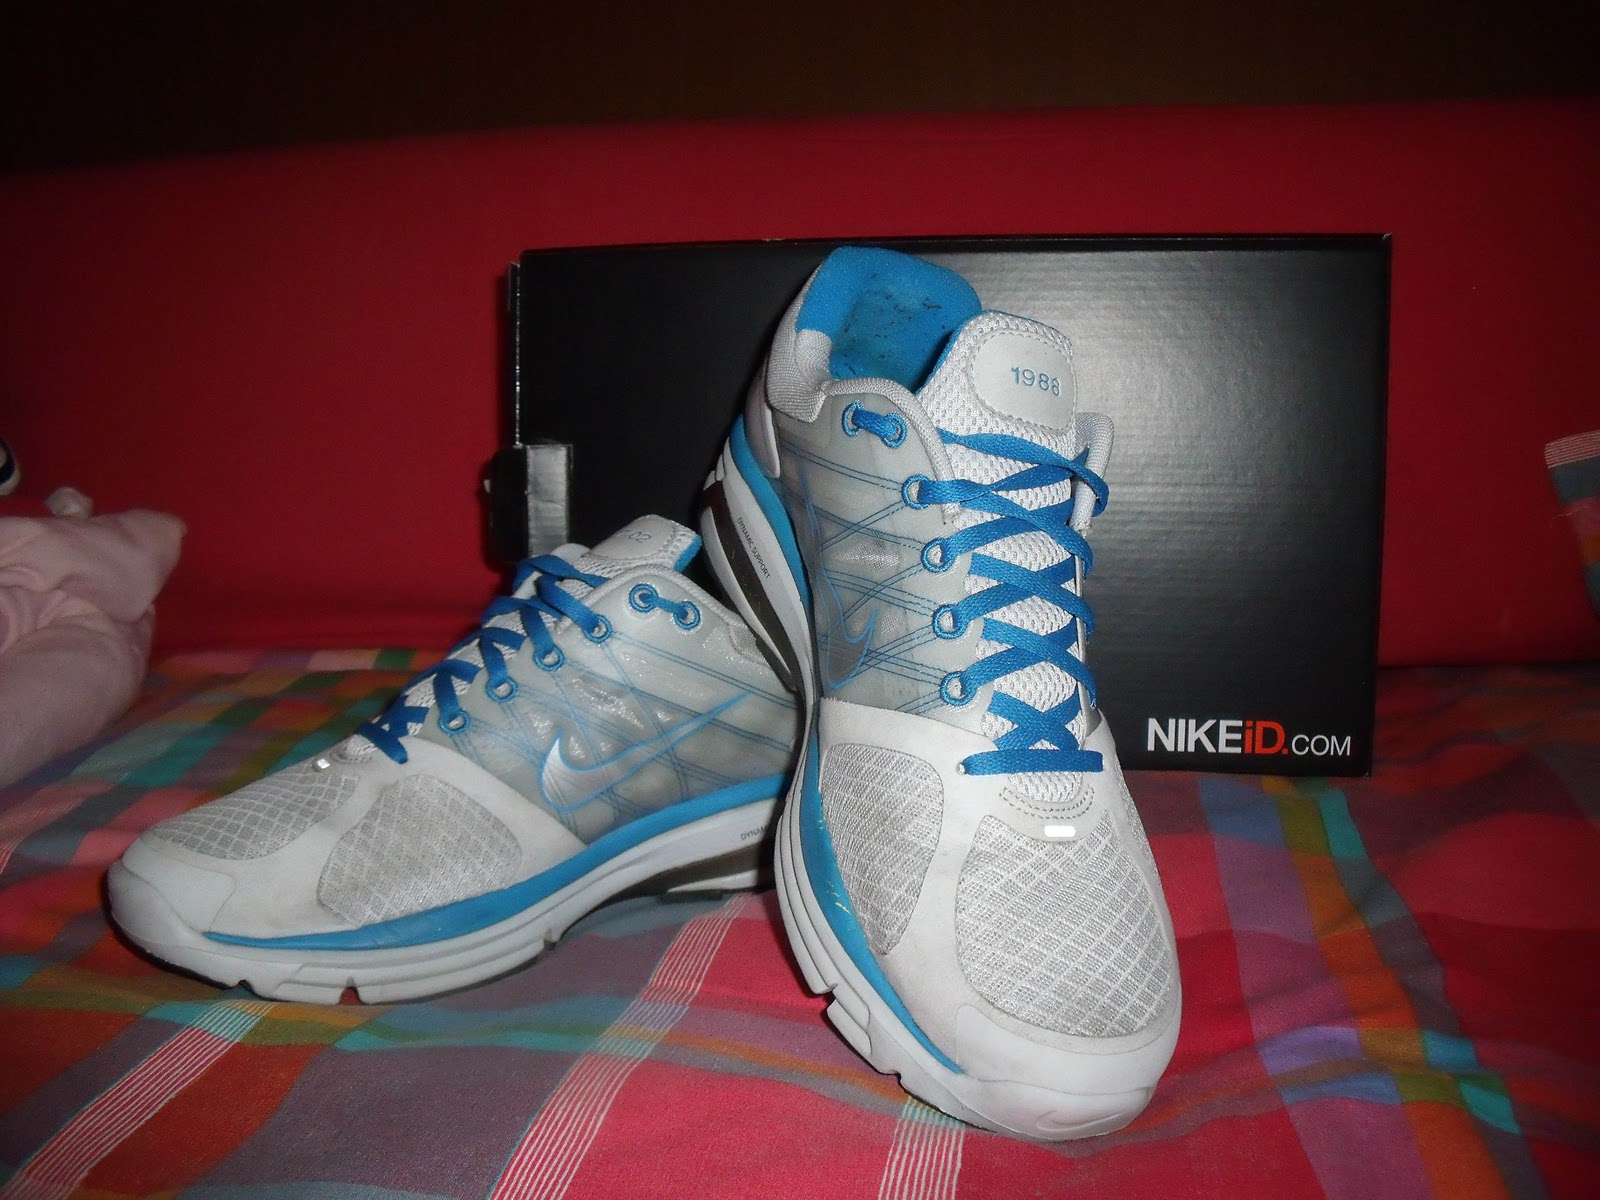 Nike Test Lunarglide And Drive 2 Shoes Nikeid Sport Cw41gawq